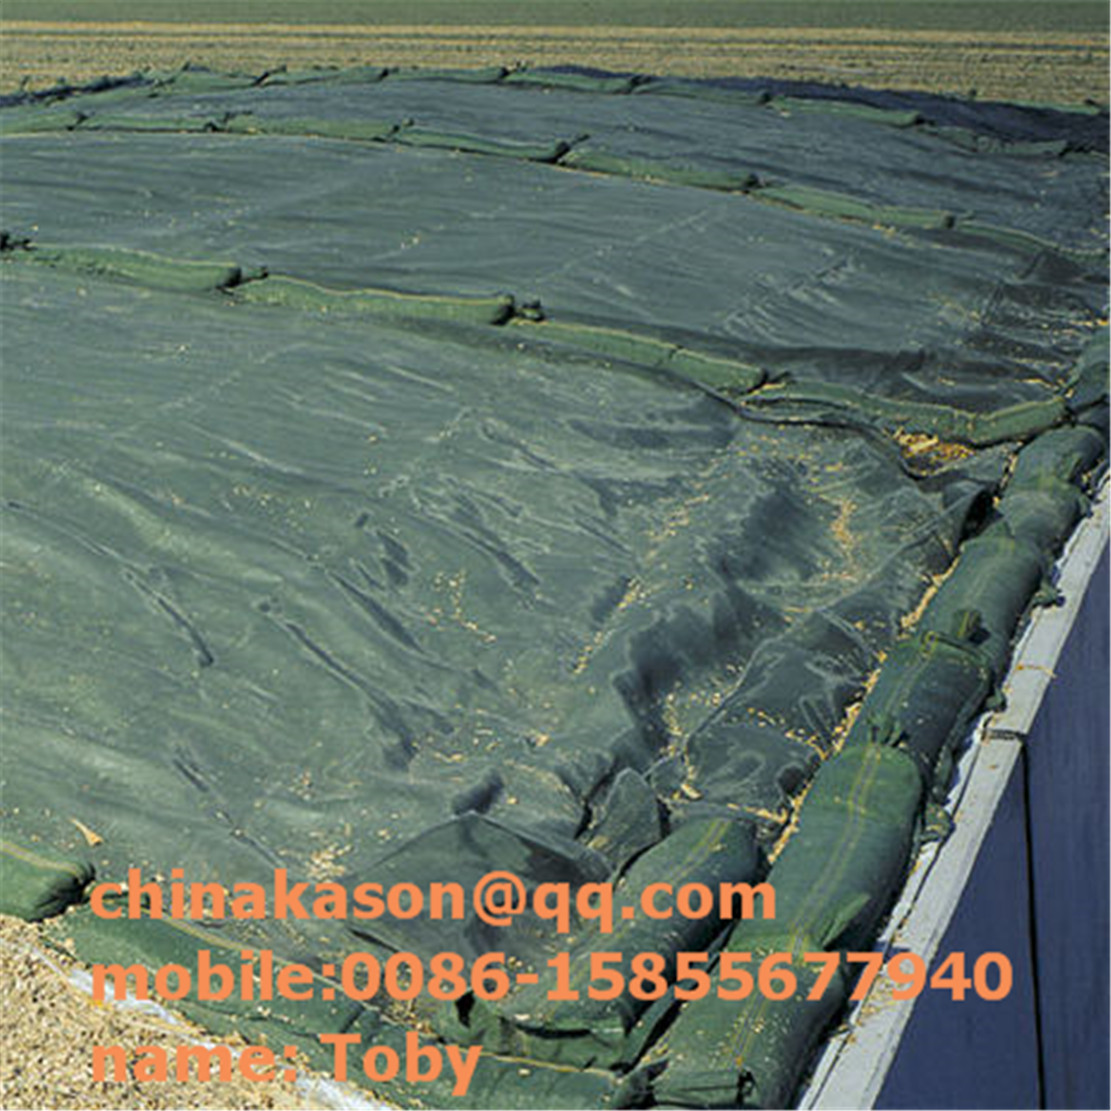 Strong silage woven netting monofilament, silage protection net 200-300g/m2